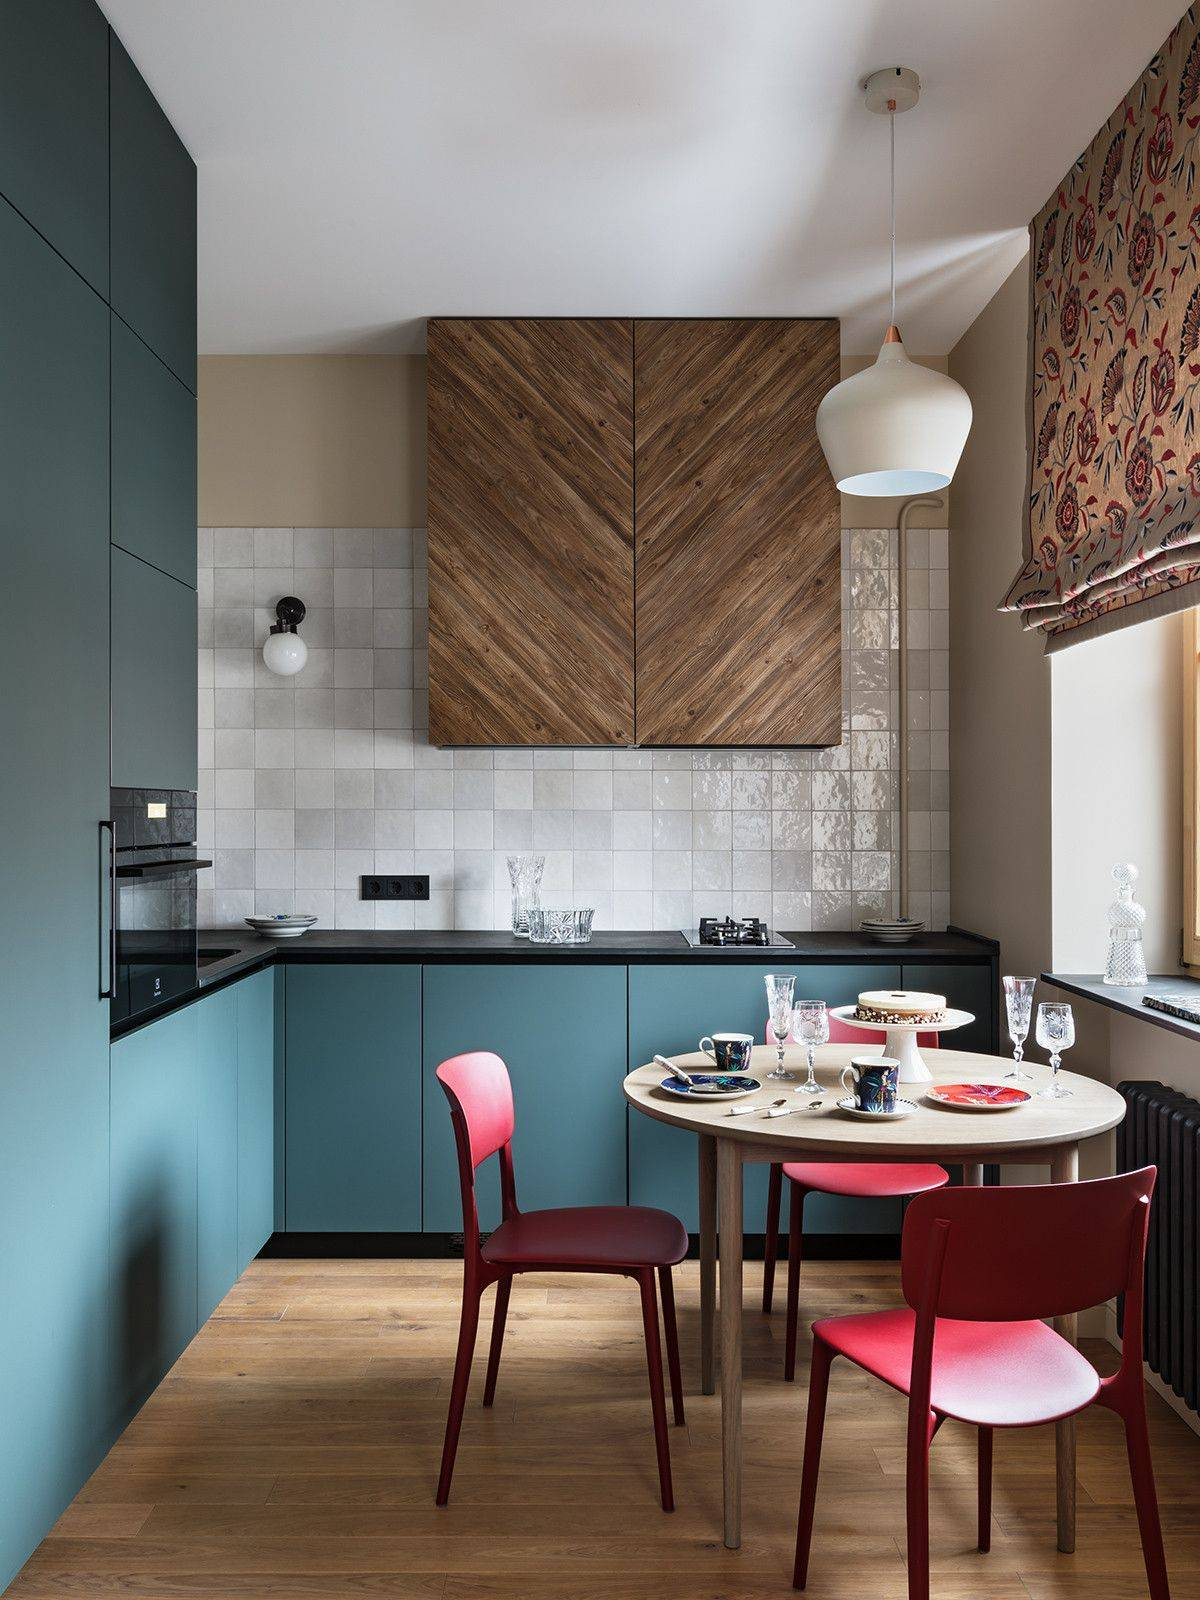 Small-contemporary-eat-in-kitchen-with-a-unique-wooden-cabinet-in-the-backdrop-39963